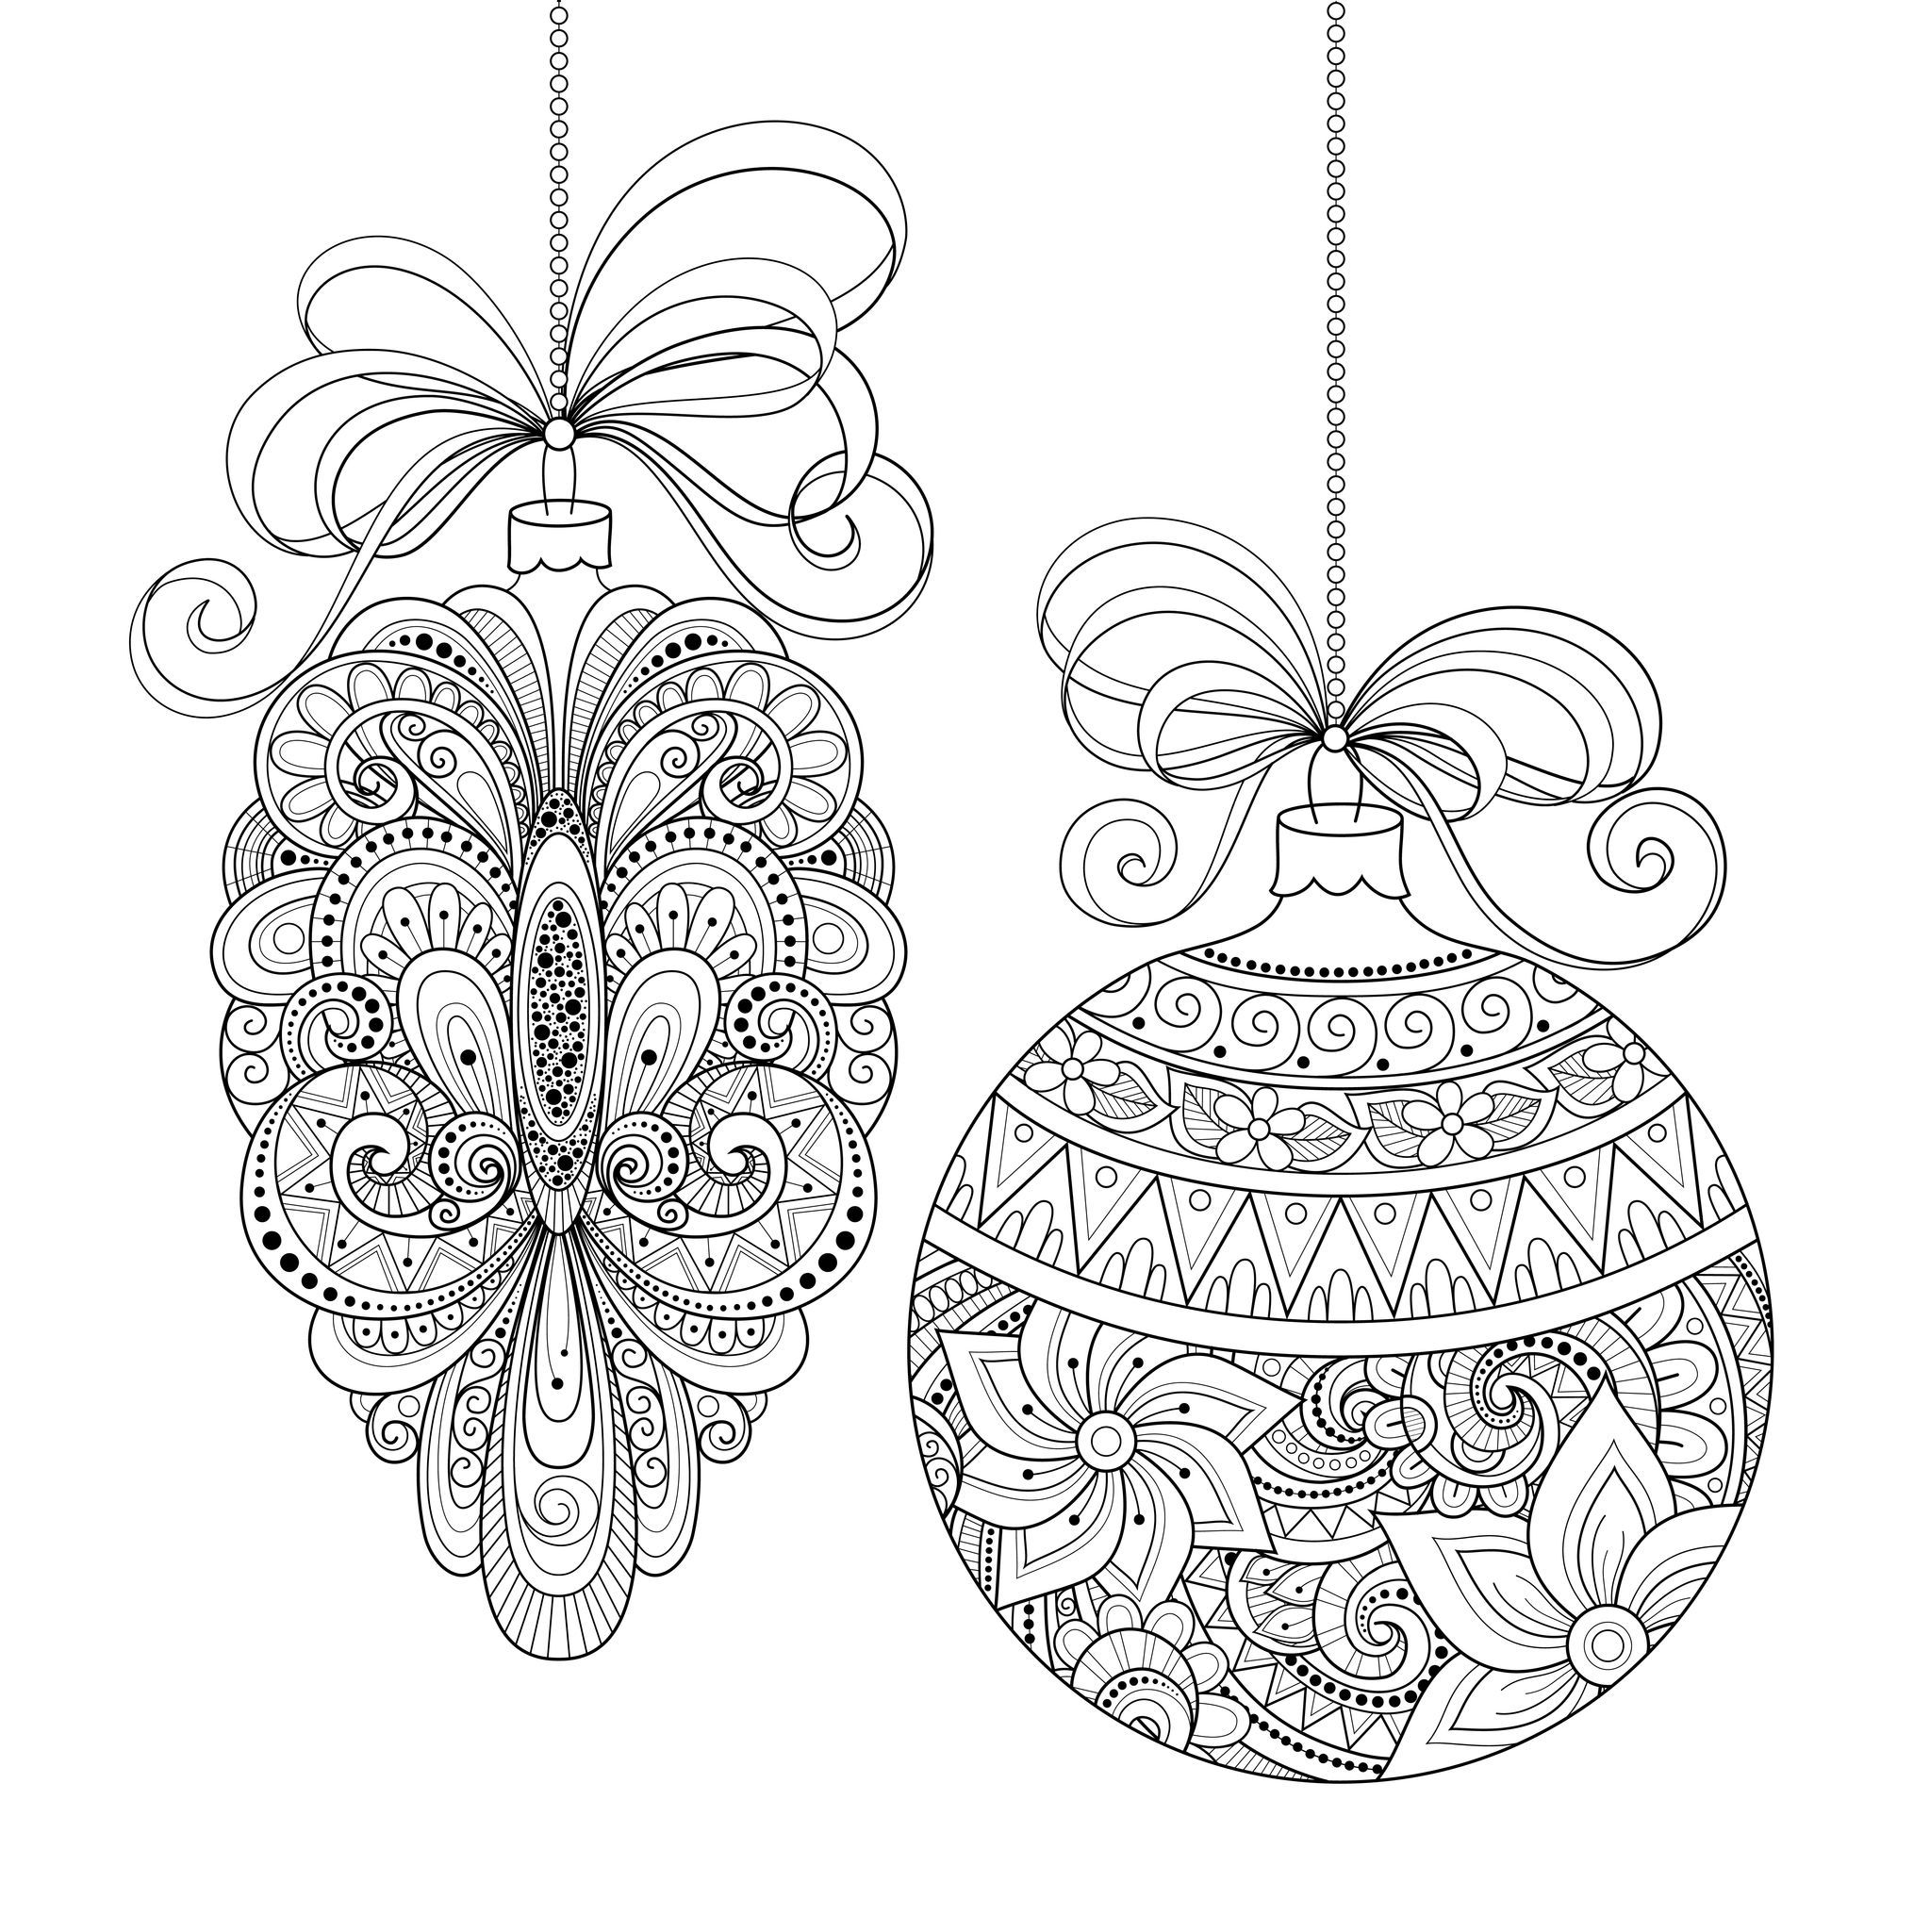 Coloring pages xmas decorations - Christmas Ornaments Use This Coloring Page To Make Your Own Greeting Cards